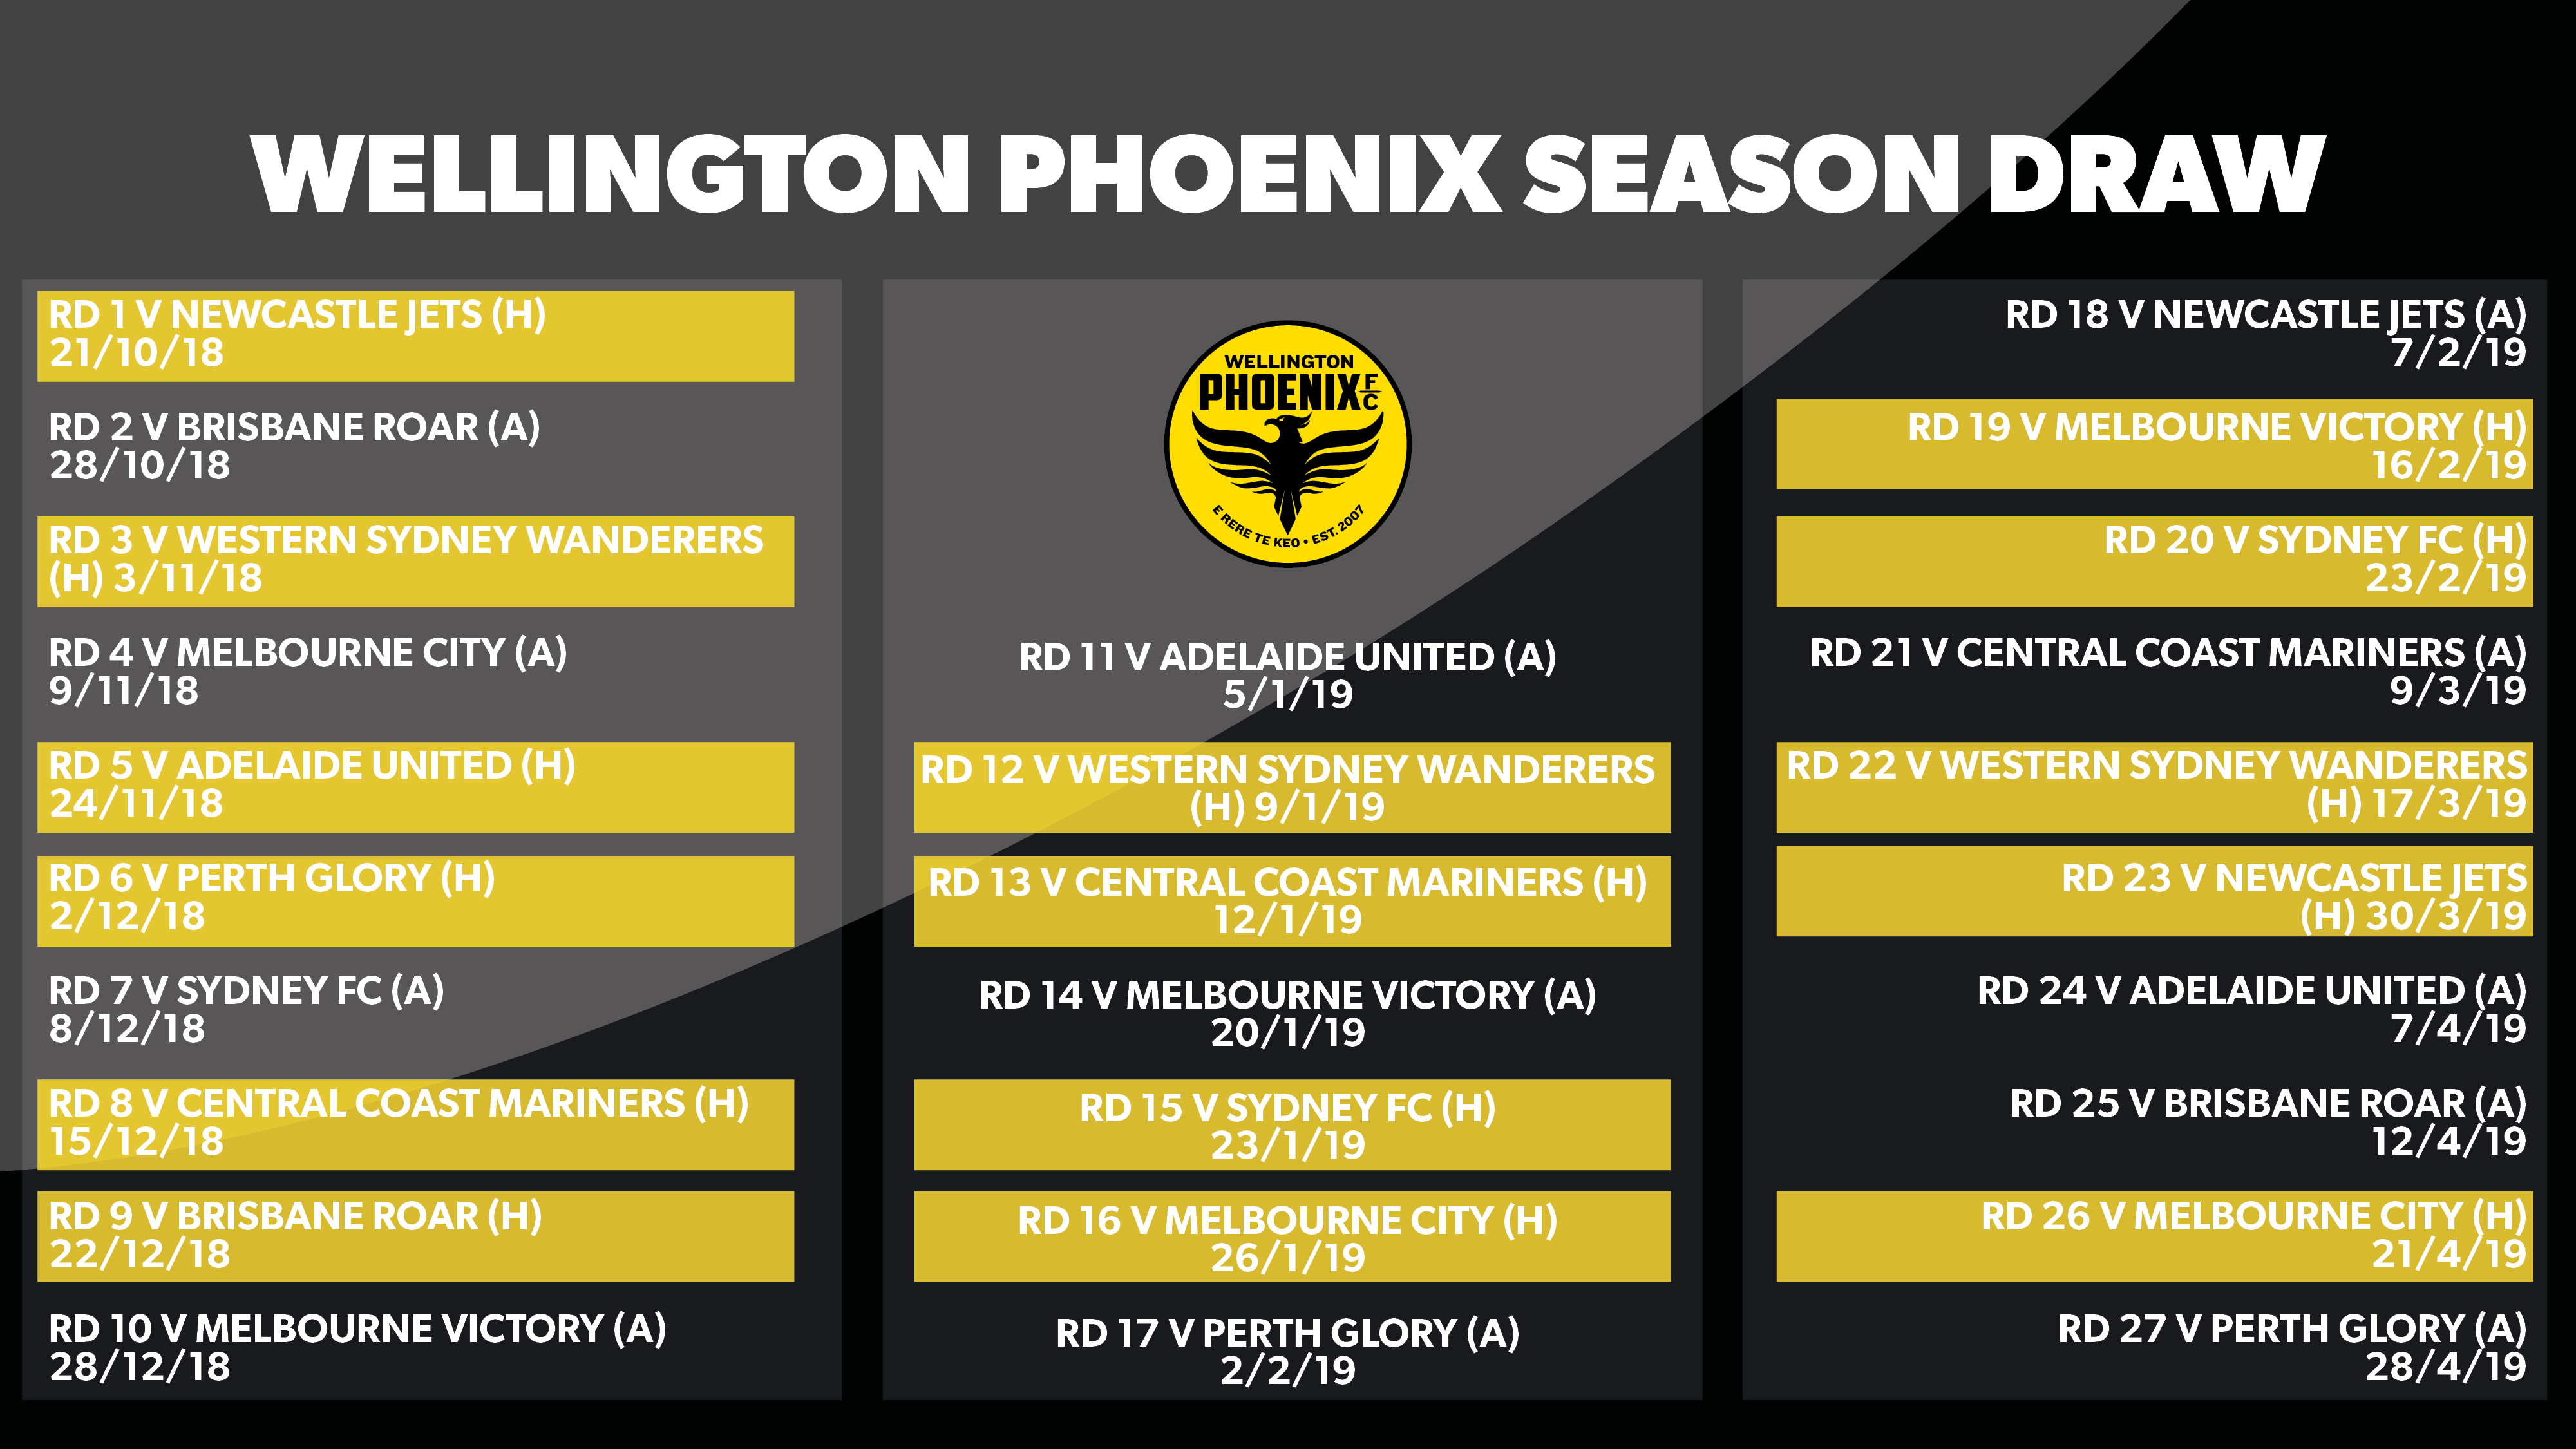 Wellington season draw